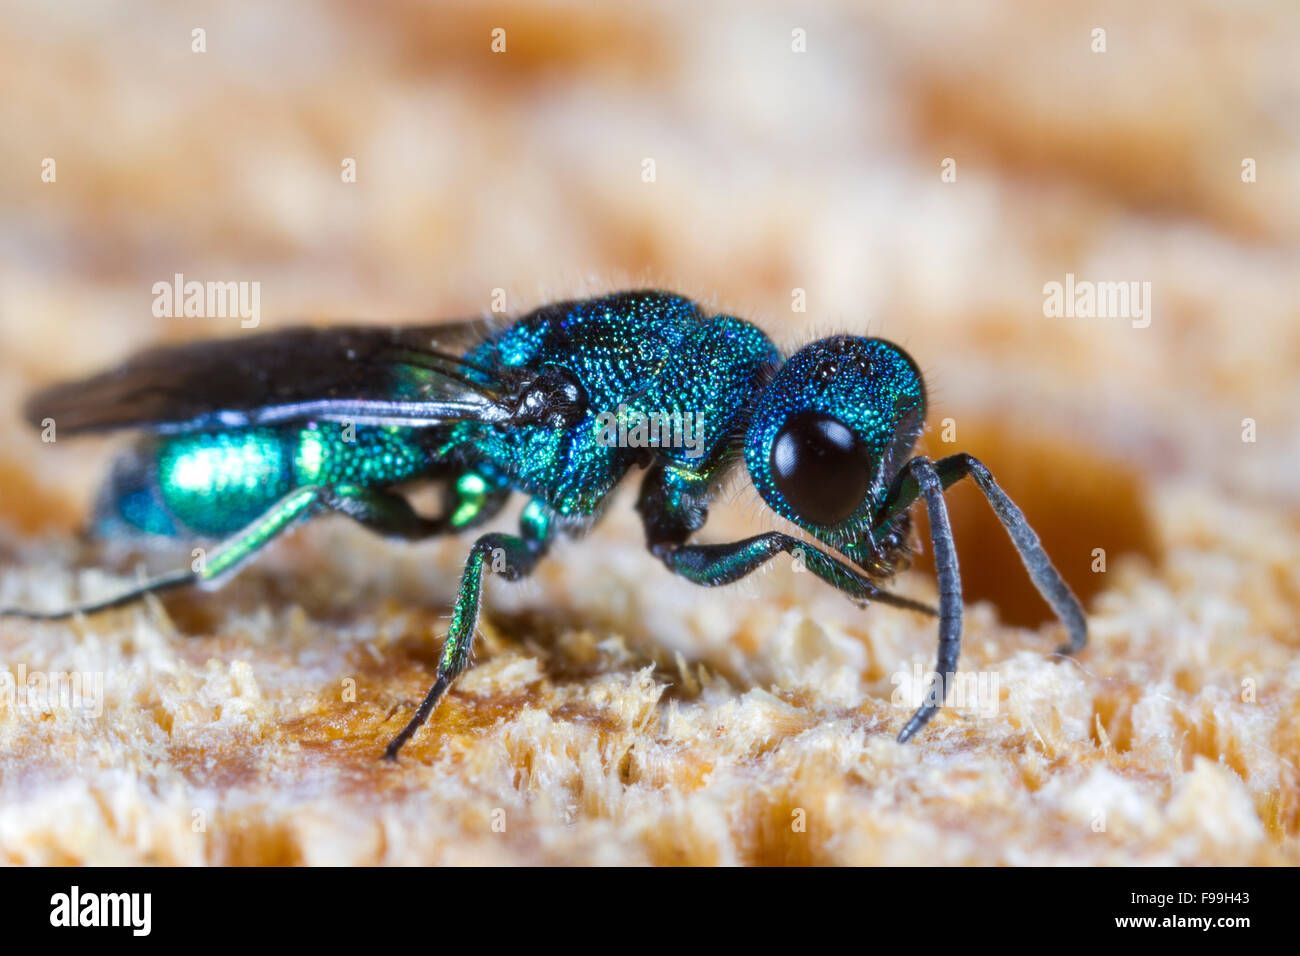 Blue Jewel or Cuckoo Wasp (Trichrysis cyanea) adult female on wood, using antenna to search for nests of host wasps. - Stock Image